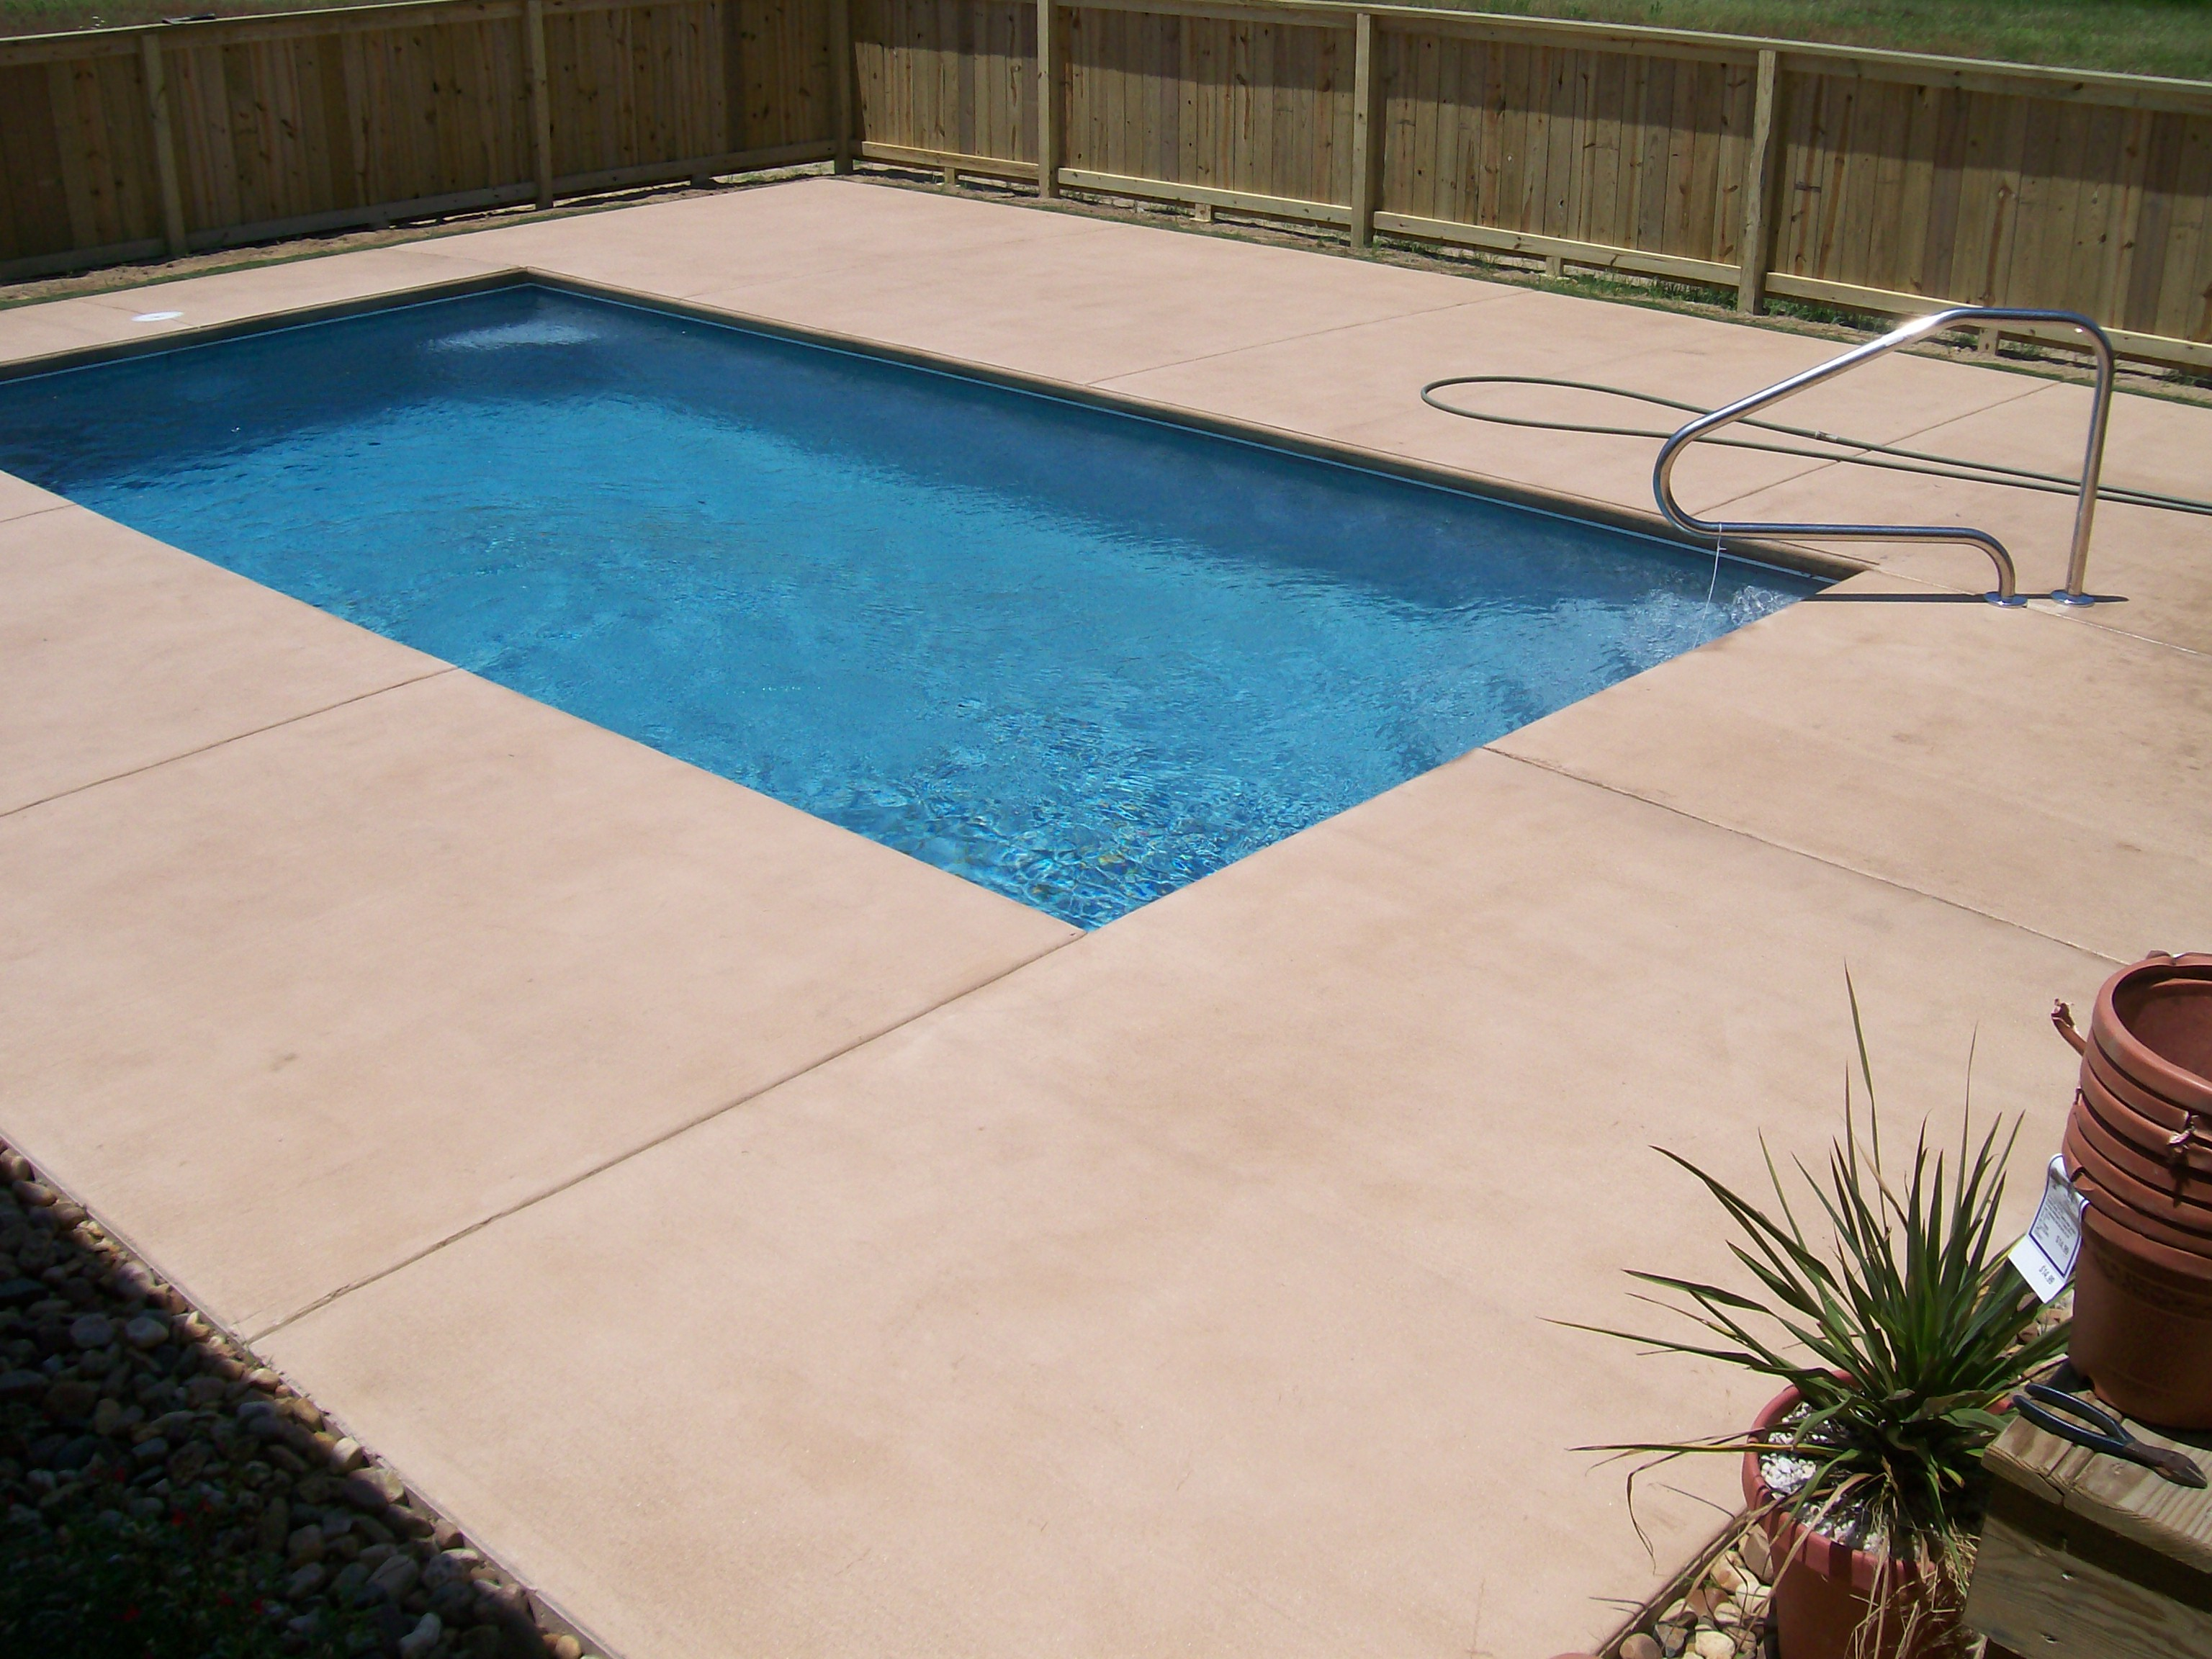 Colored Concrete Pool Deck Heller Concrete Inc. Serving The Outer Banks Of North Carolina